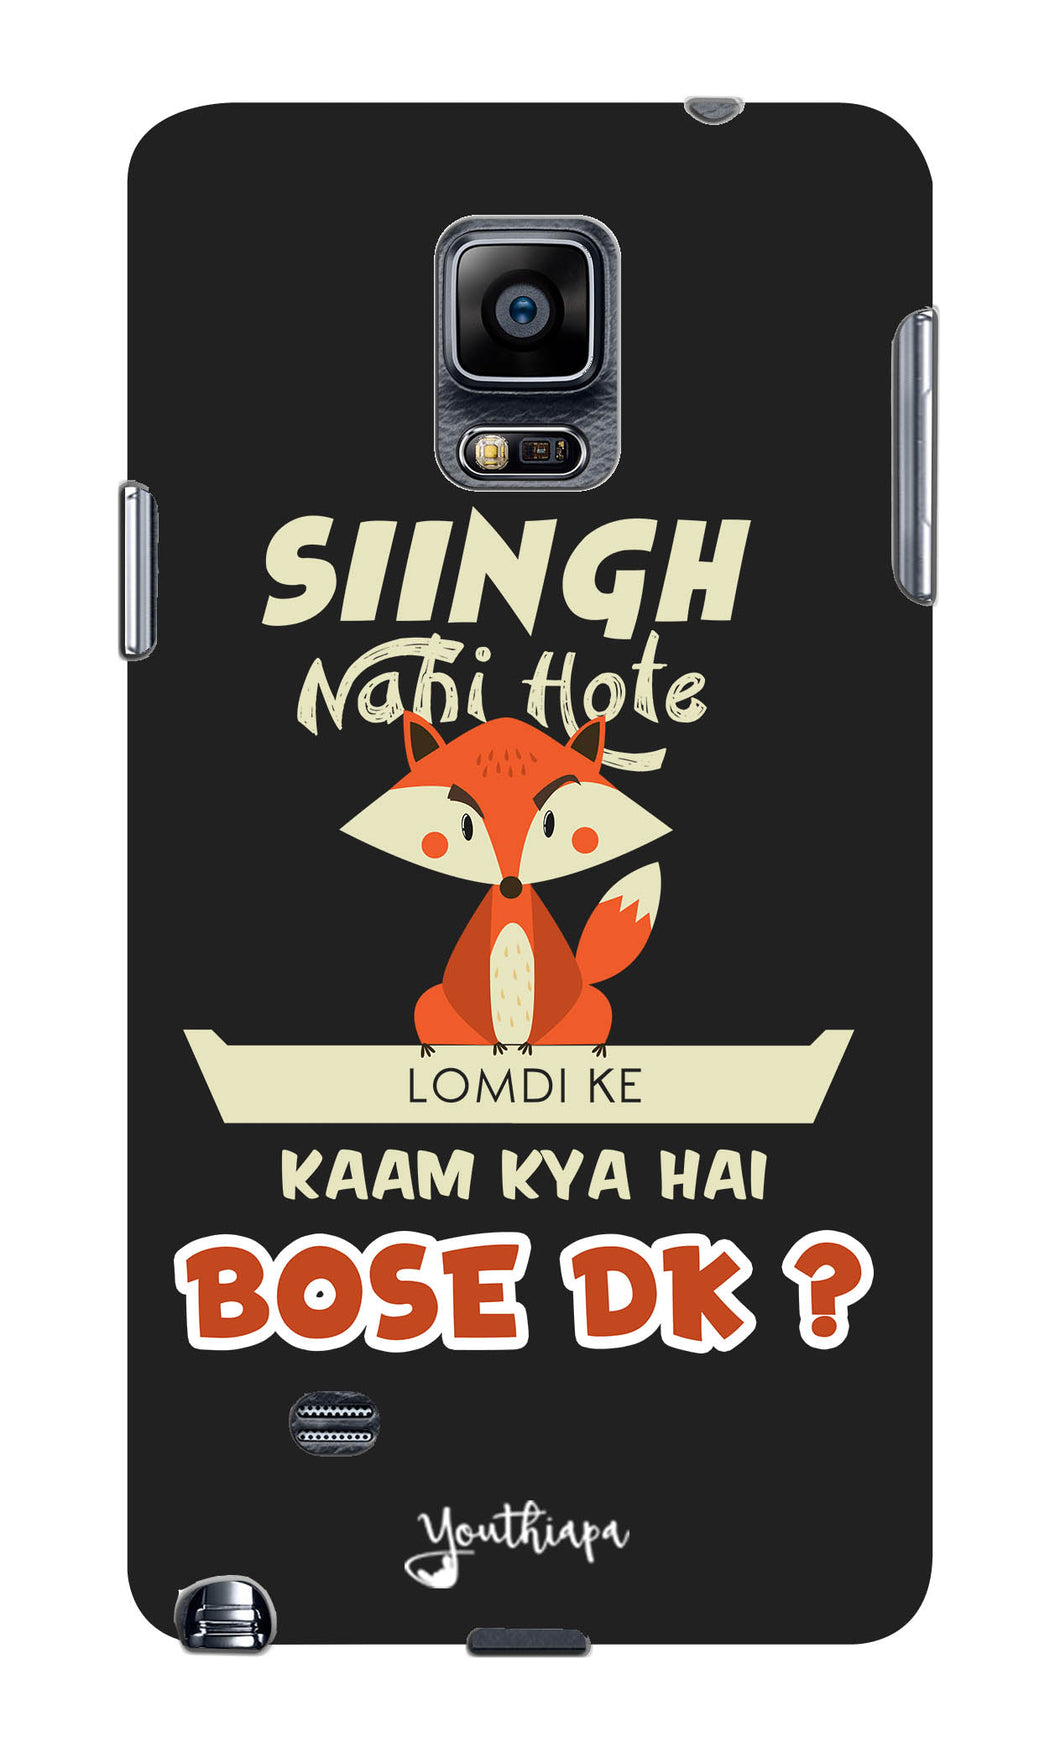 Singh Nahi Hote for Samsung Galaxy Note 4